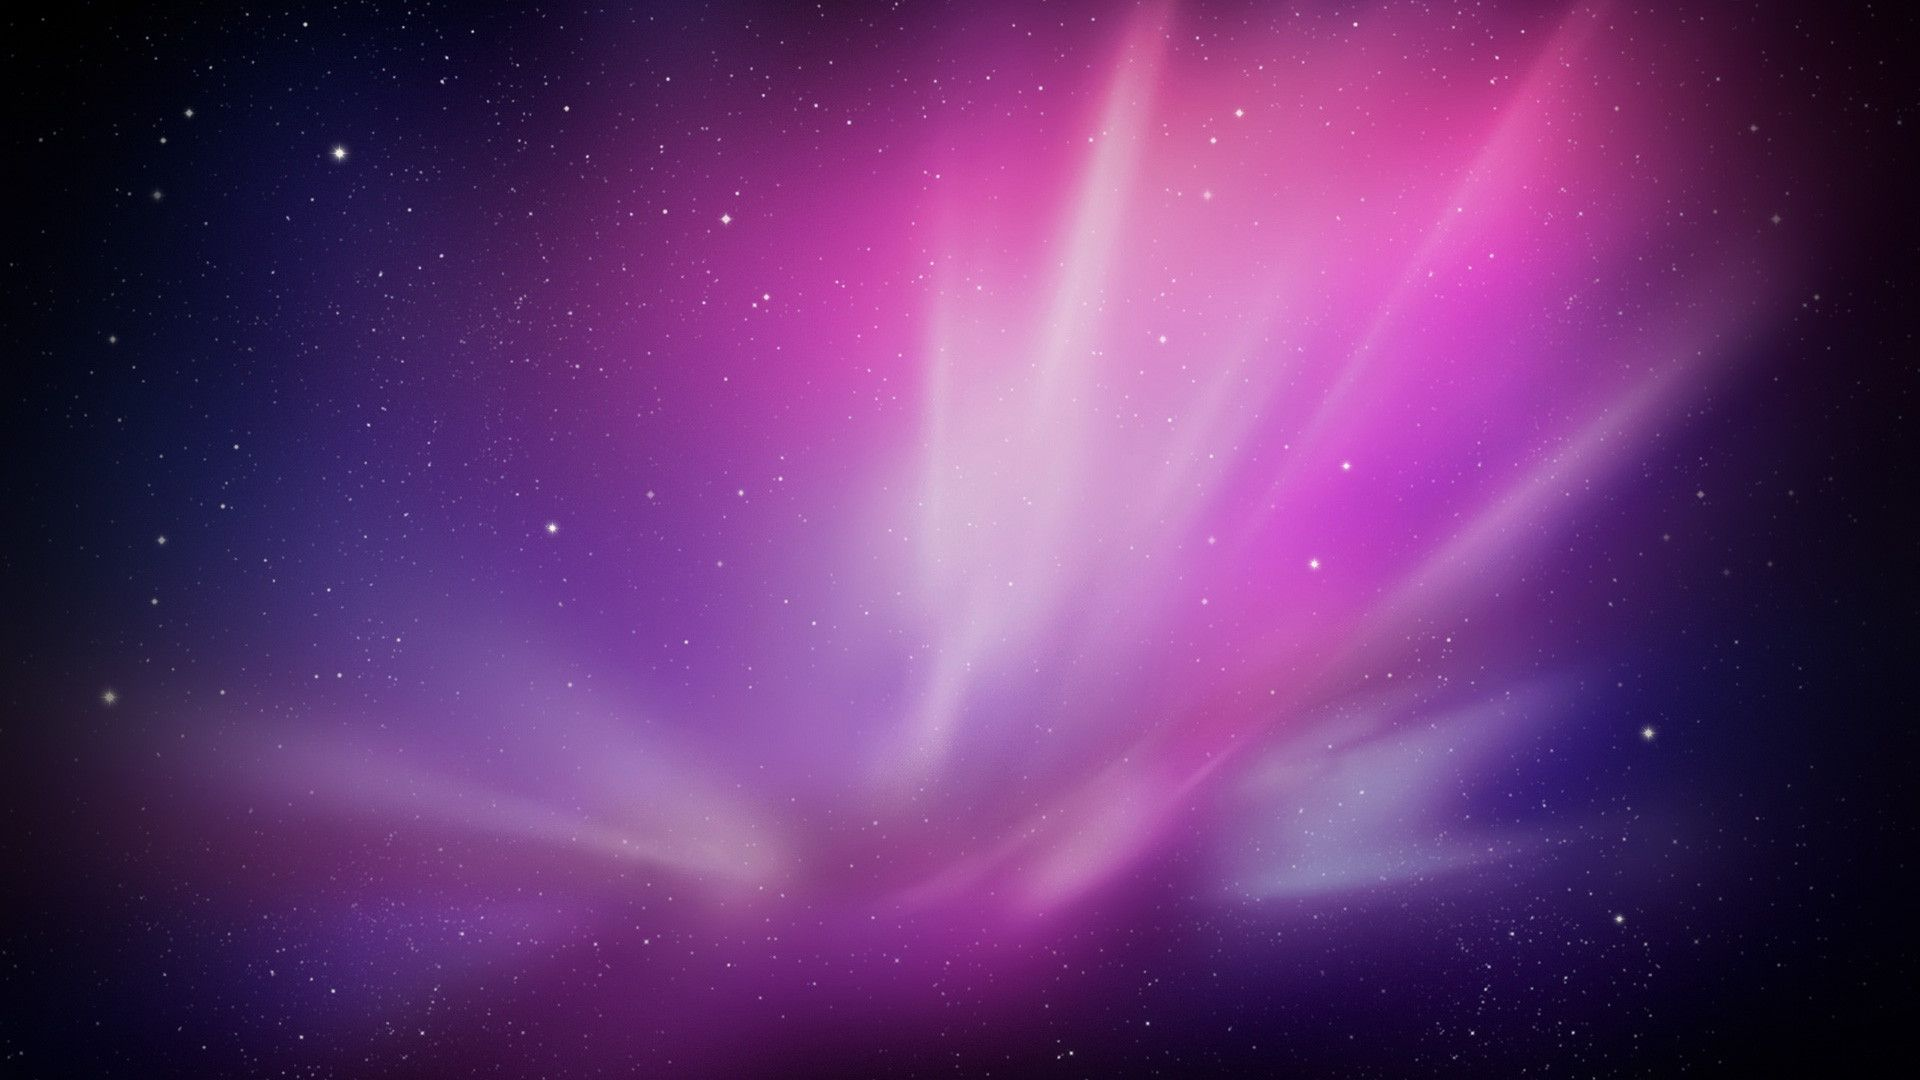 Mac hd wallpapers 1080p wallpaper cave images wallpapers mac hd wallpapers 1080p wallpaper cave voltagebd Gallery